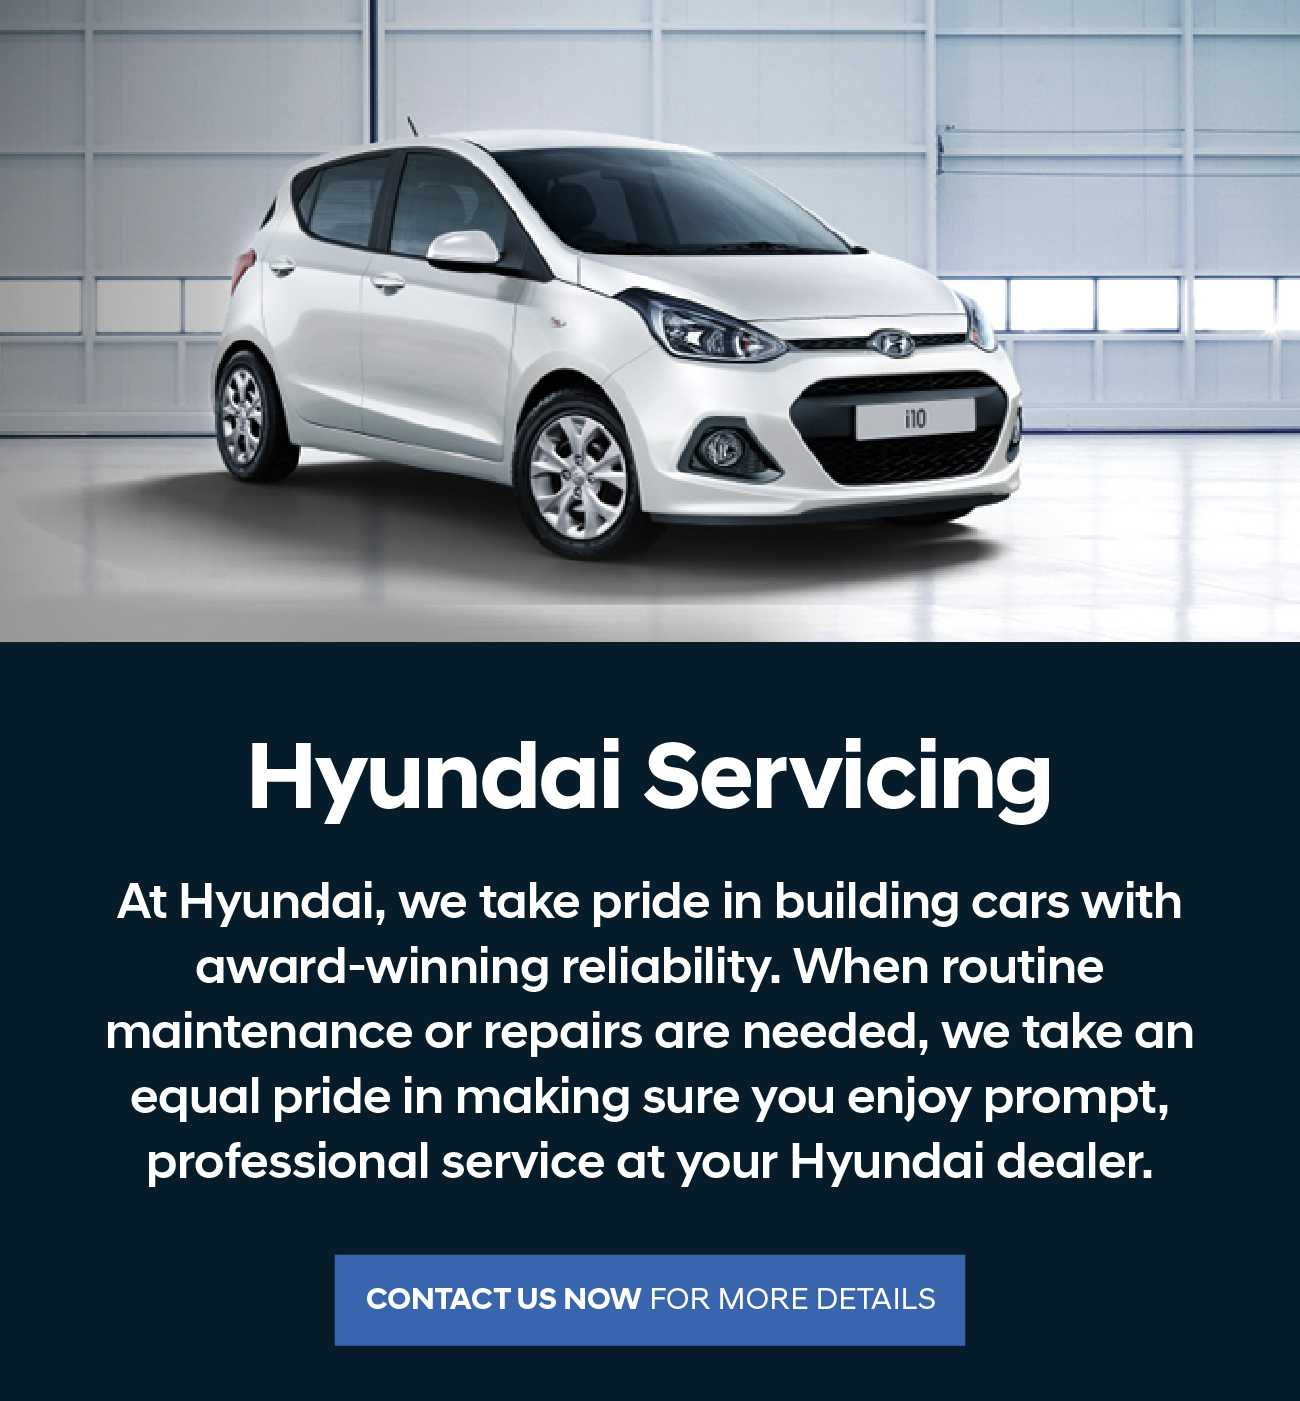 Hyundai Servicing Message